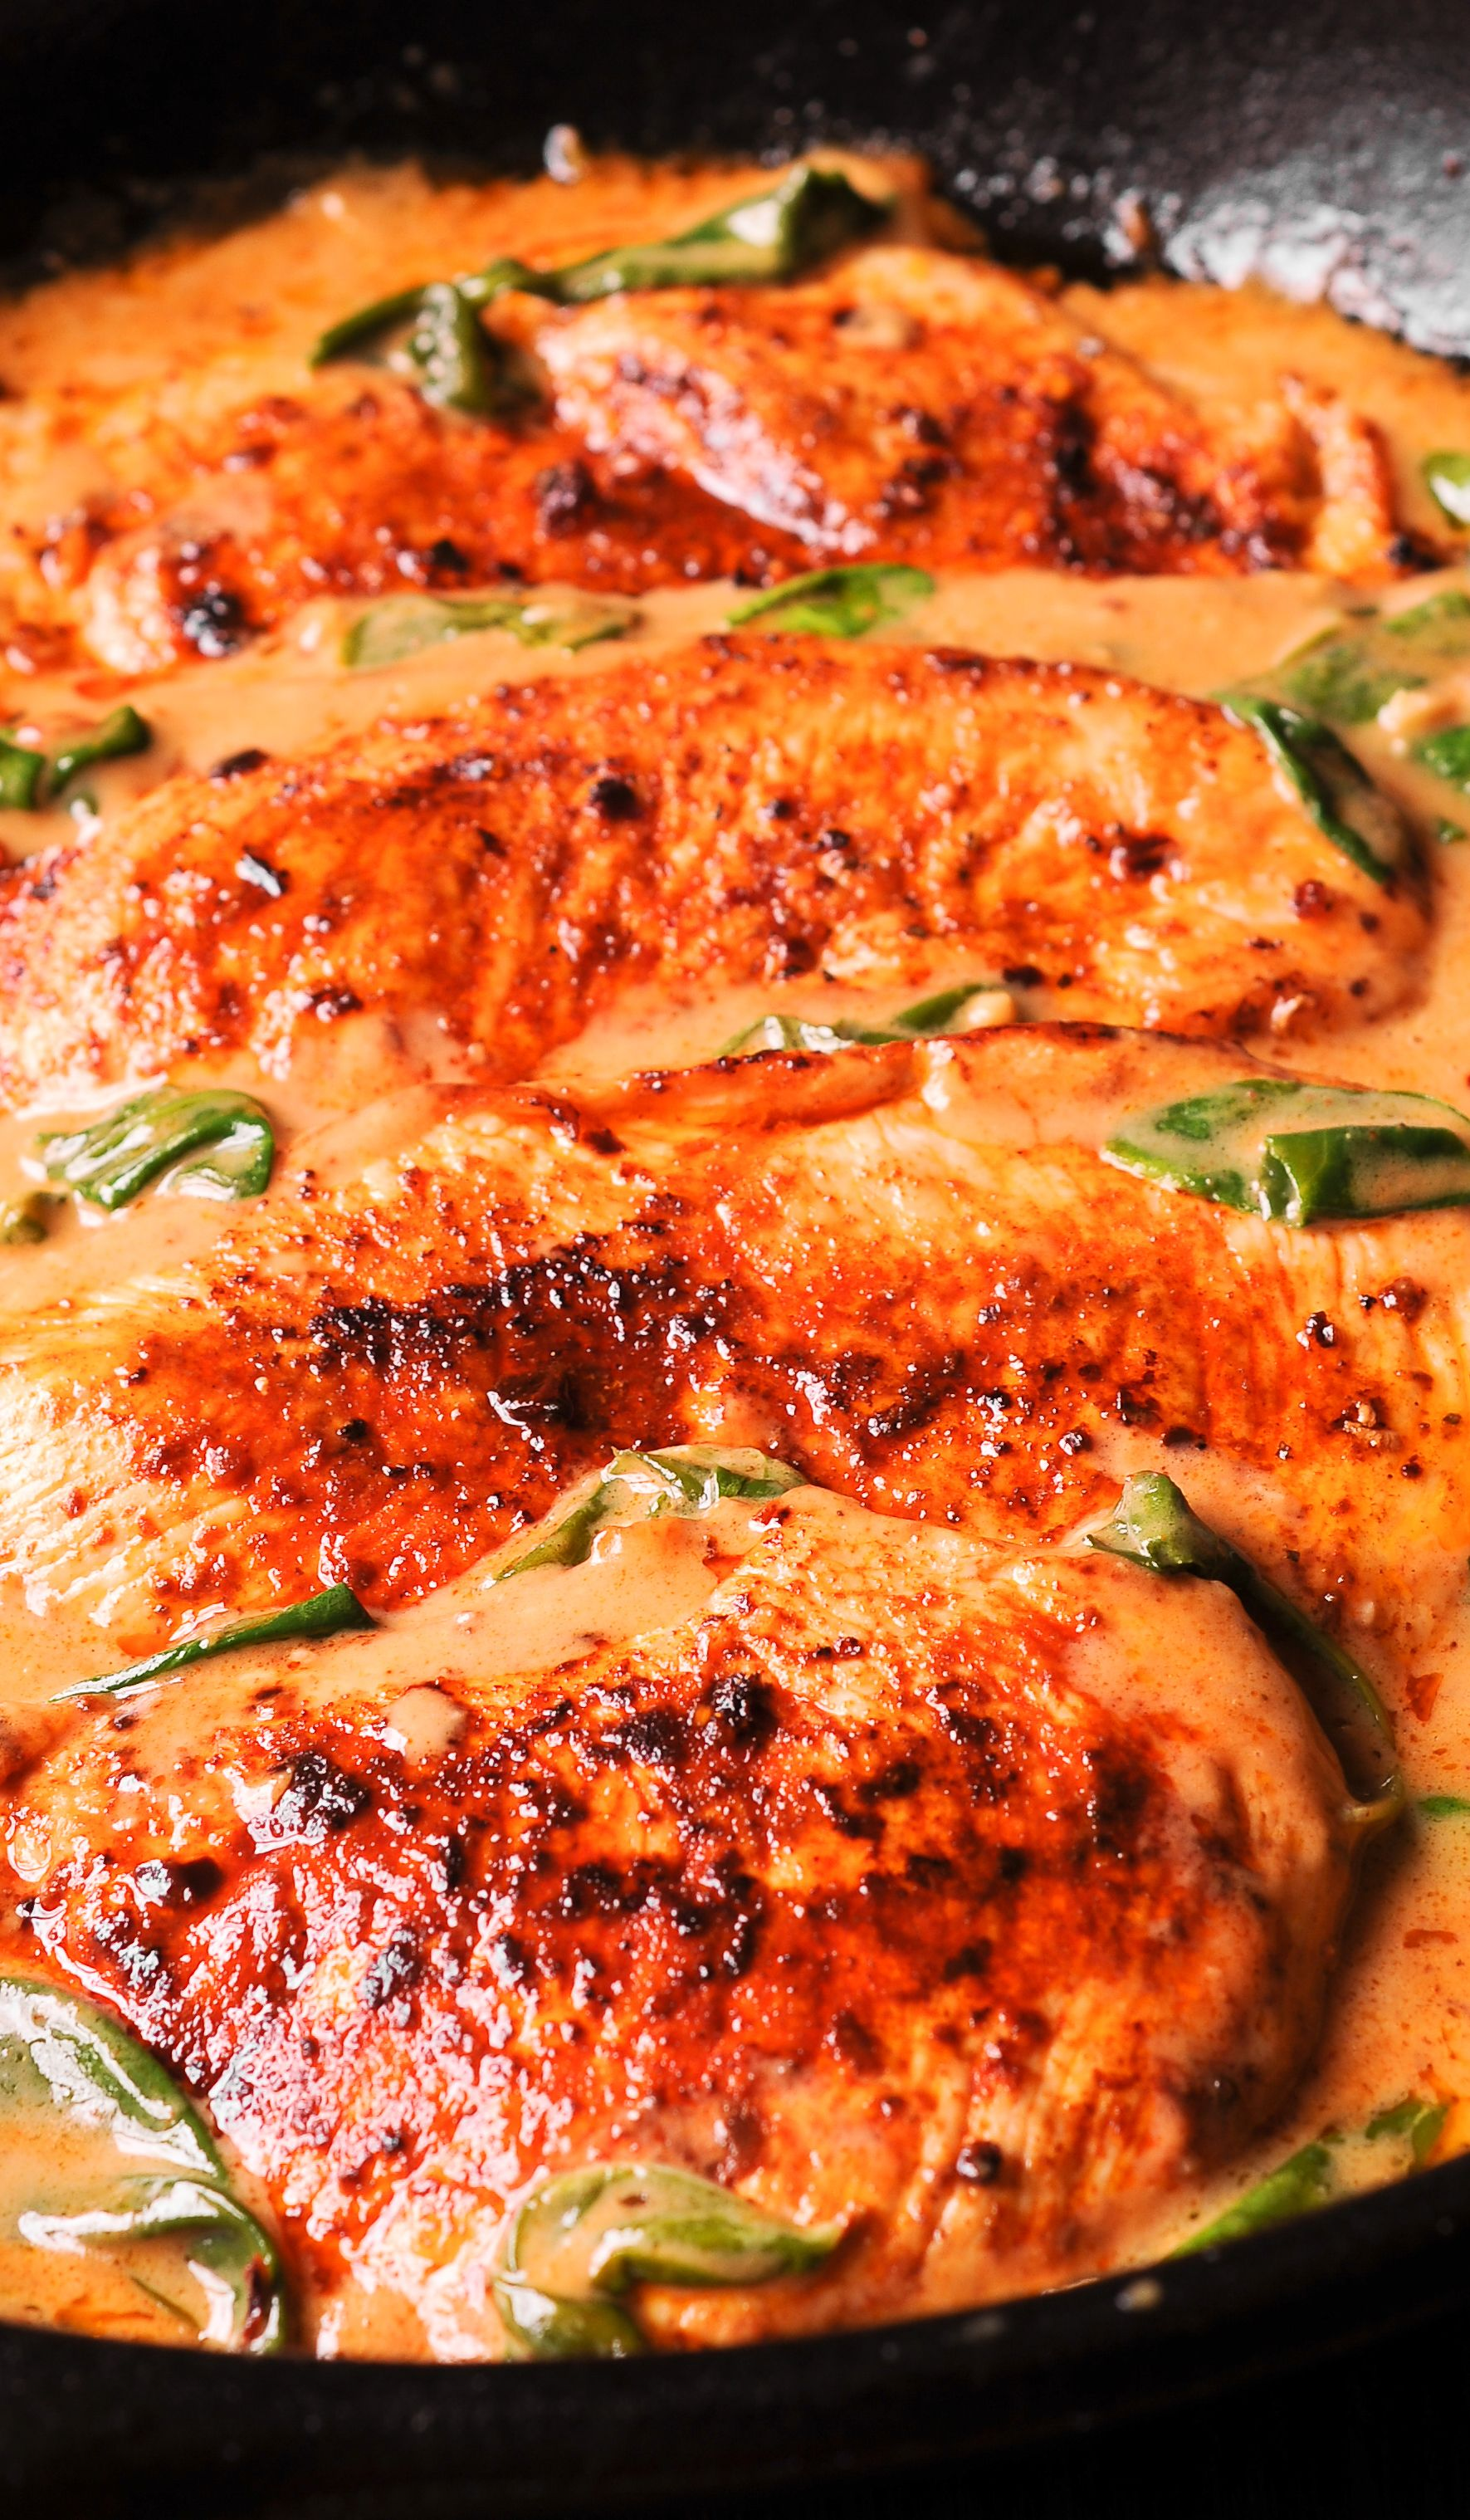 Chicken And Spinach In Creamy Paprika Sauce Is An Easy To Make One Pan Dish With Amazing Flavor From Dry White Wi Chicken Recipes Paprika Sauce Poultry Recipes